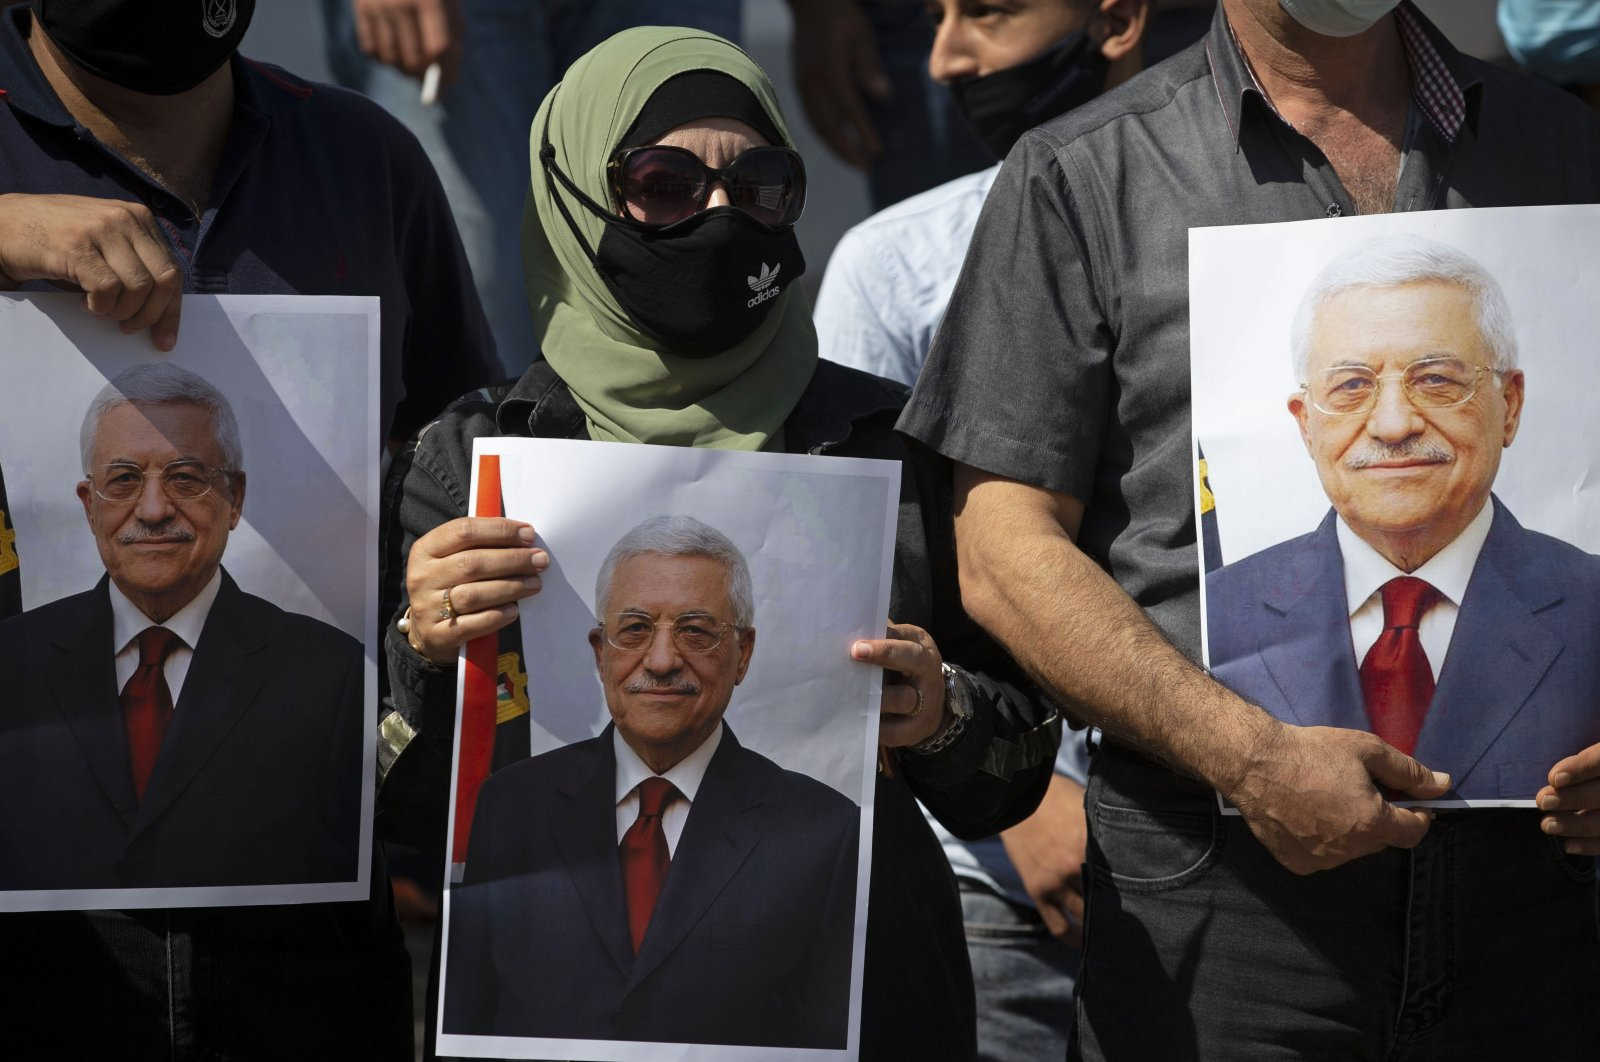 Palestinians hold pictures of Palestinian President Mahmoud Abbas during a rally to support Abbas, in the West Bank town of Tubas, Palestine, Sept. 27, 2020. (AP Photo)